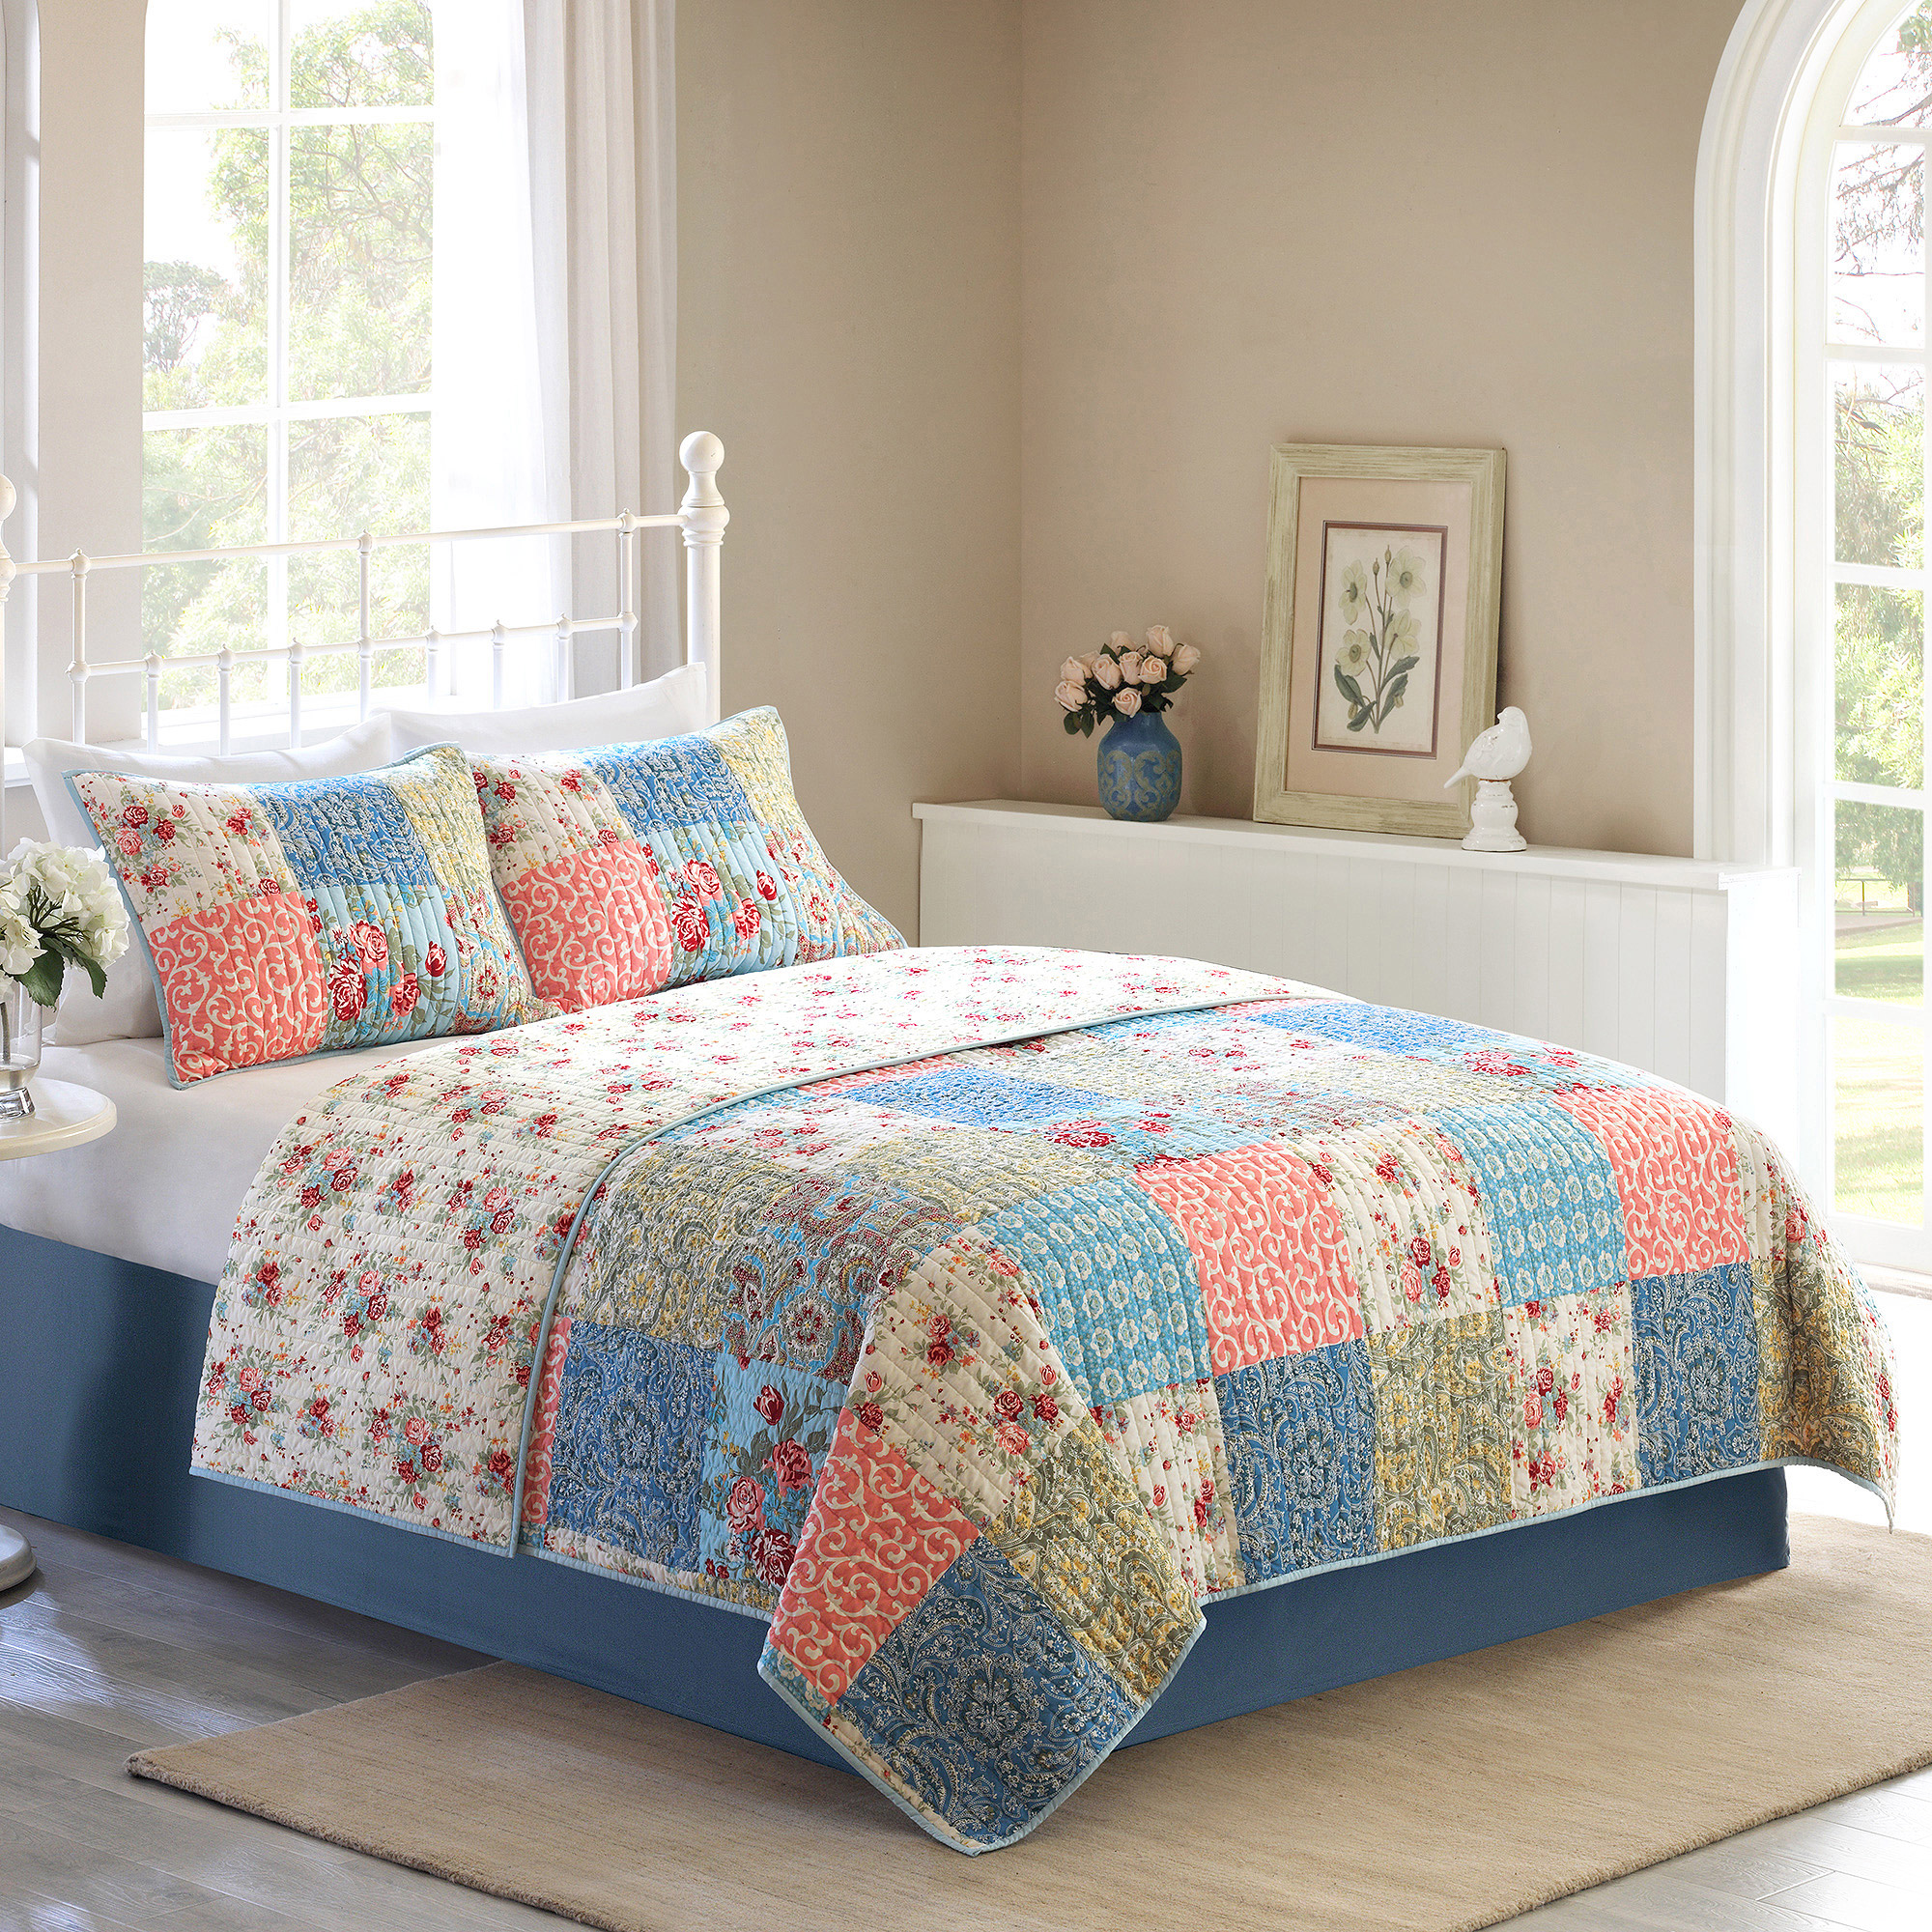 bedding and stars walmart super fashionable gardens com navy jeweled ideas set homes better quilts kids charming amazon cool wonderfull sets collection design quilt